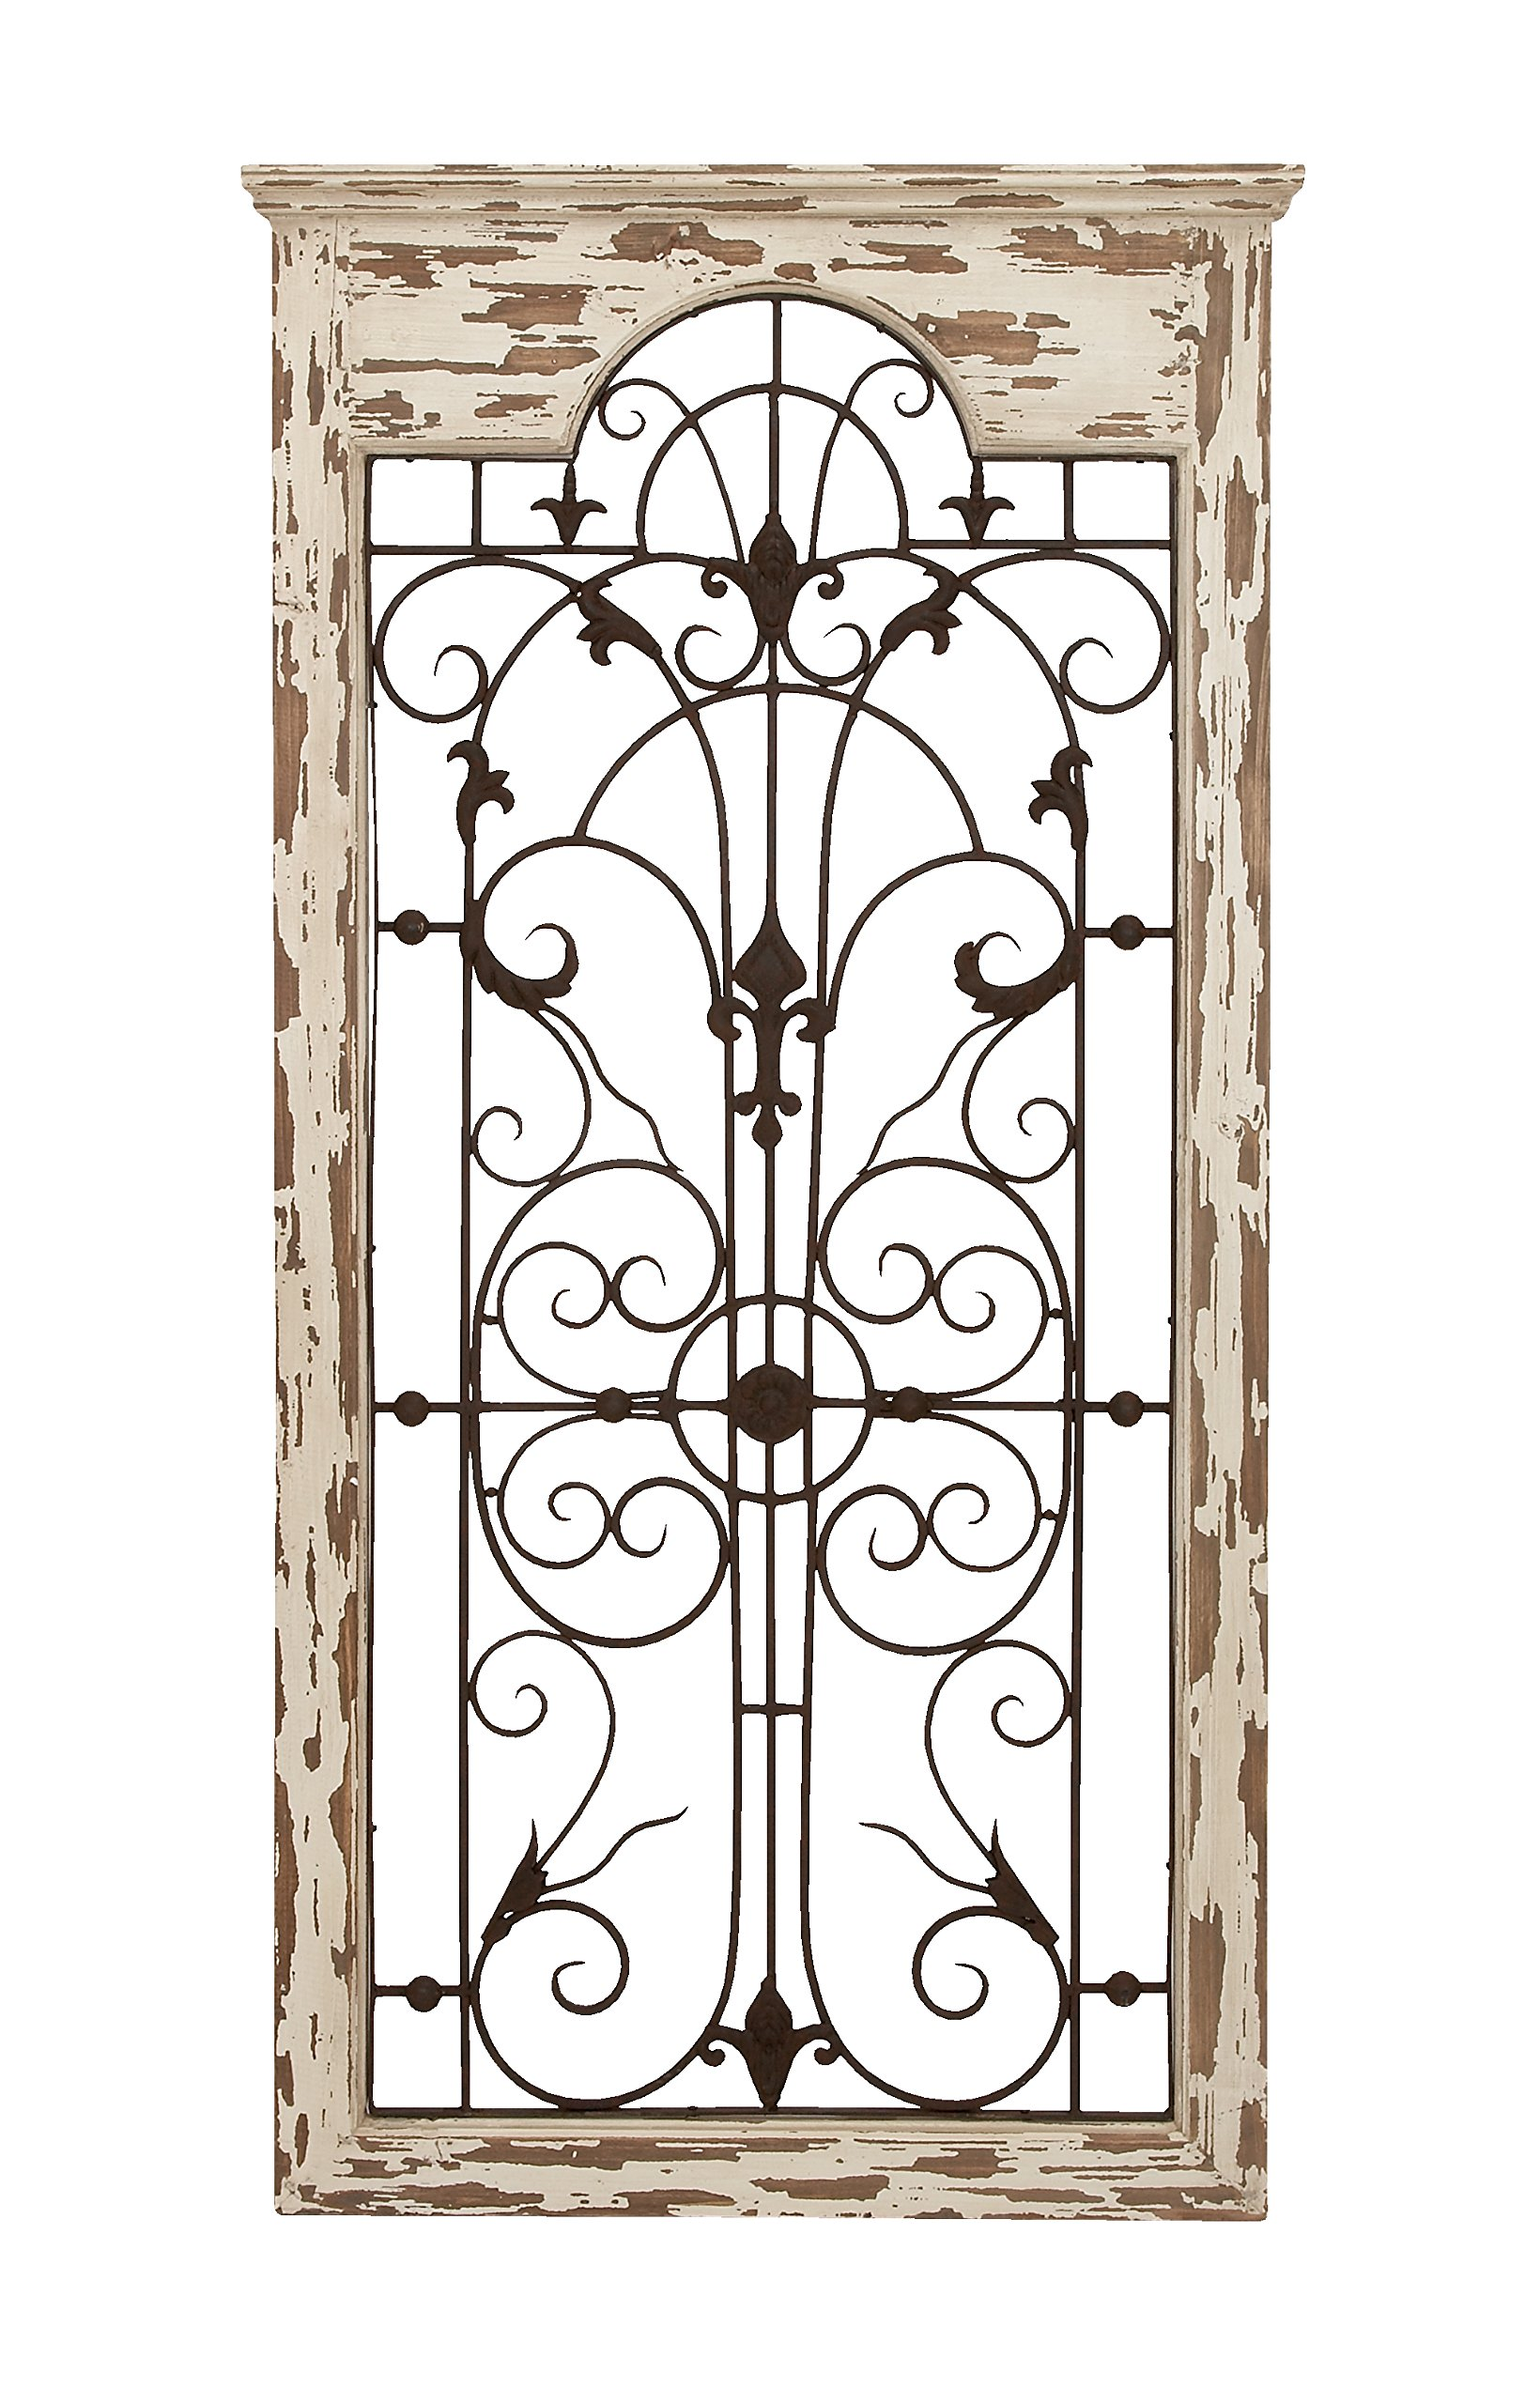 Deco 79 Magical Wooded Gate Style Wall Plaque by Deco 79